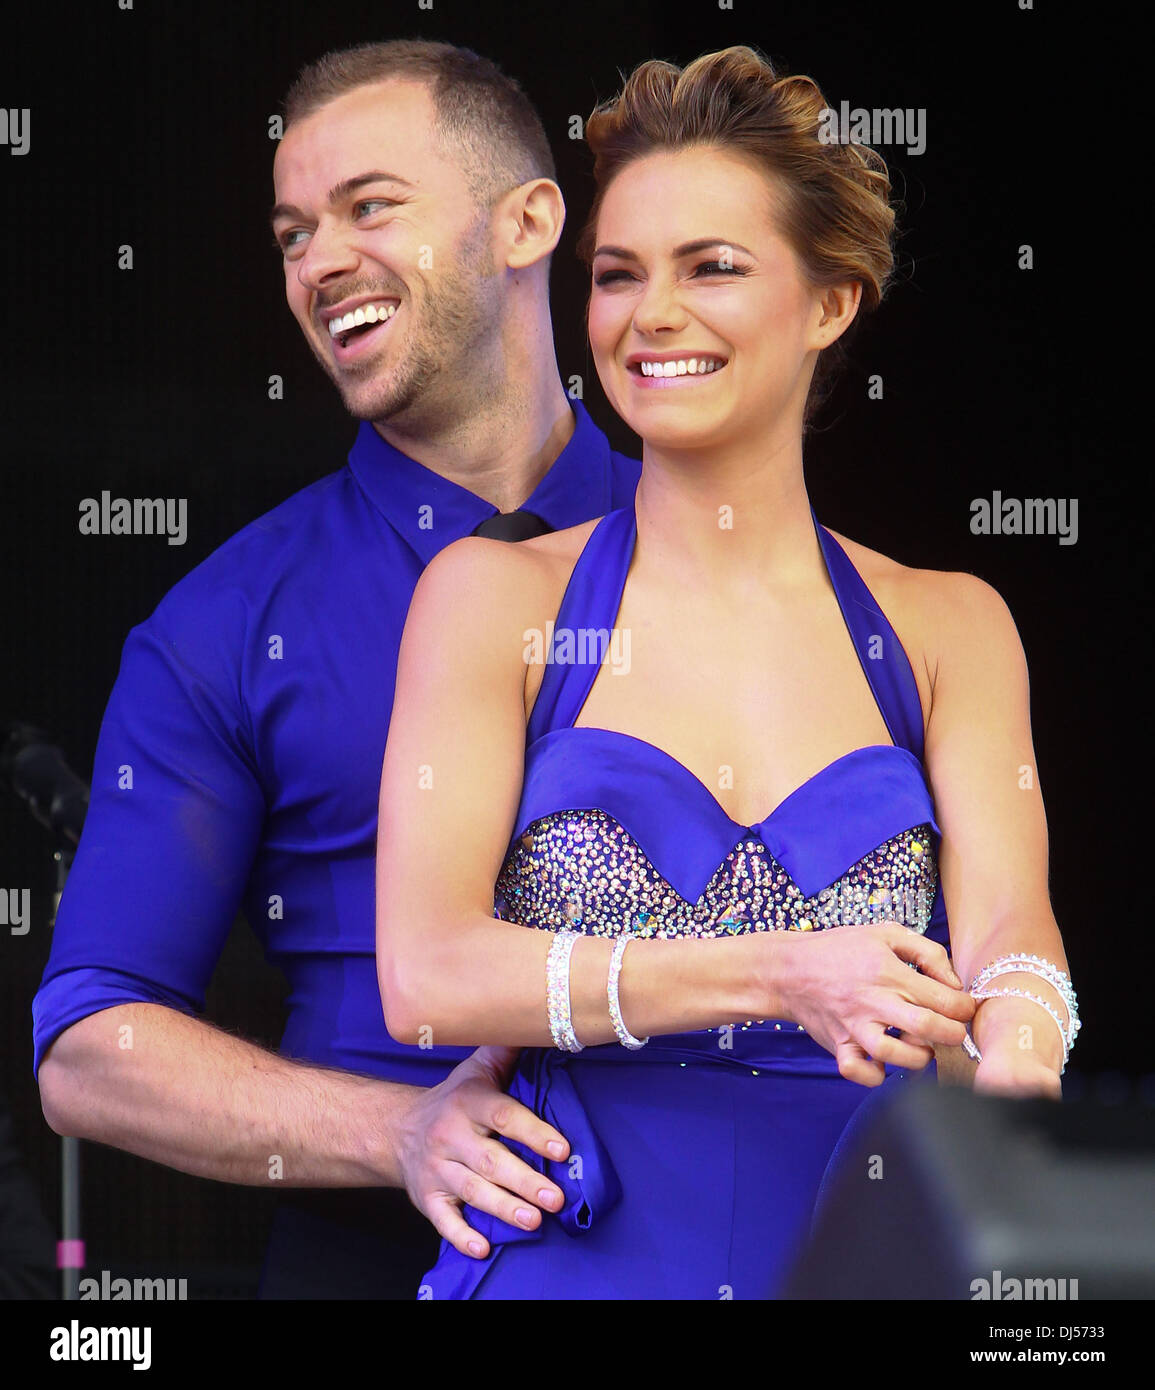 artem and lea dating